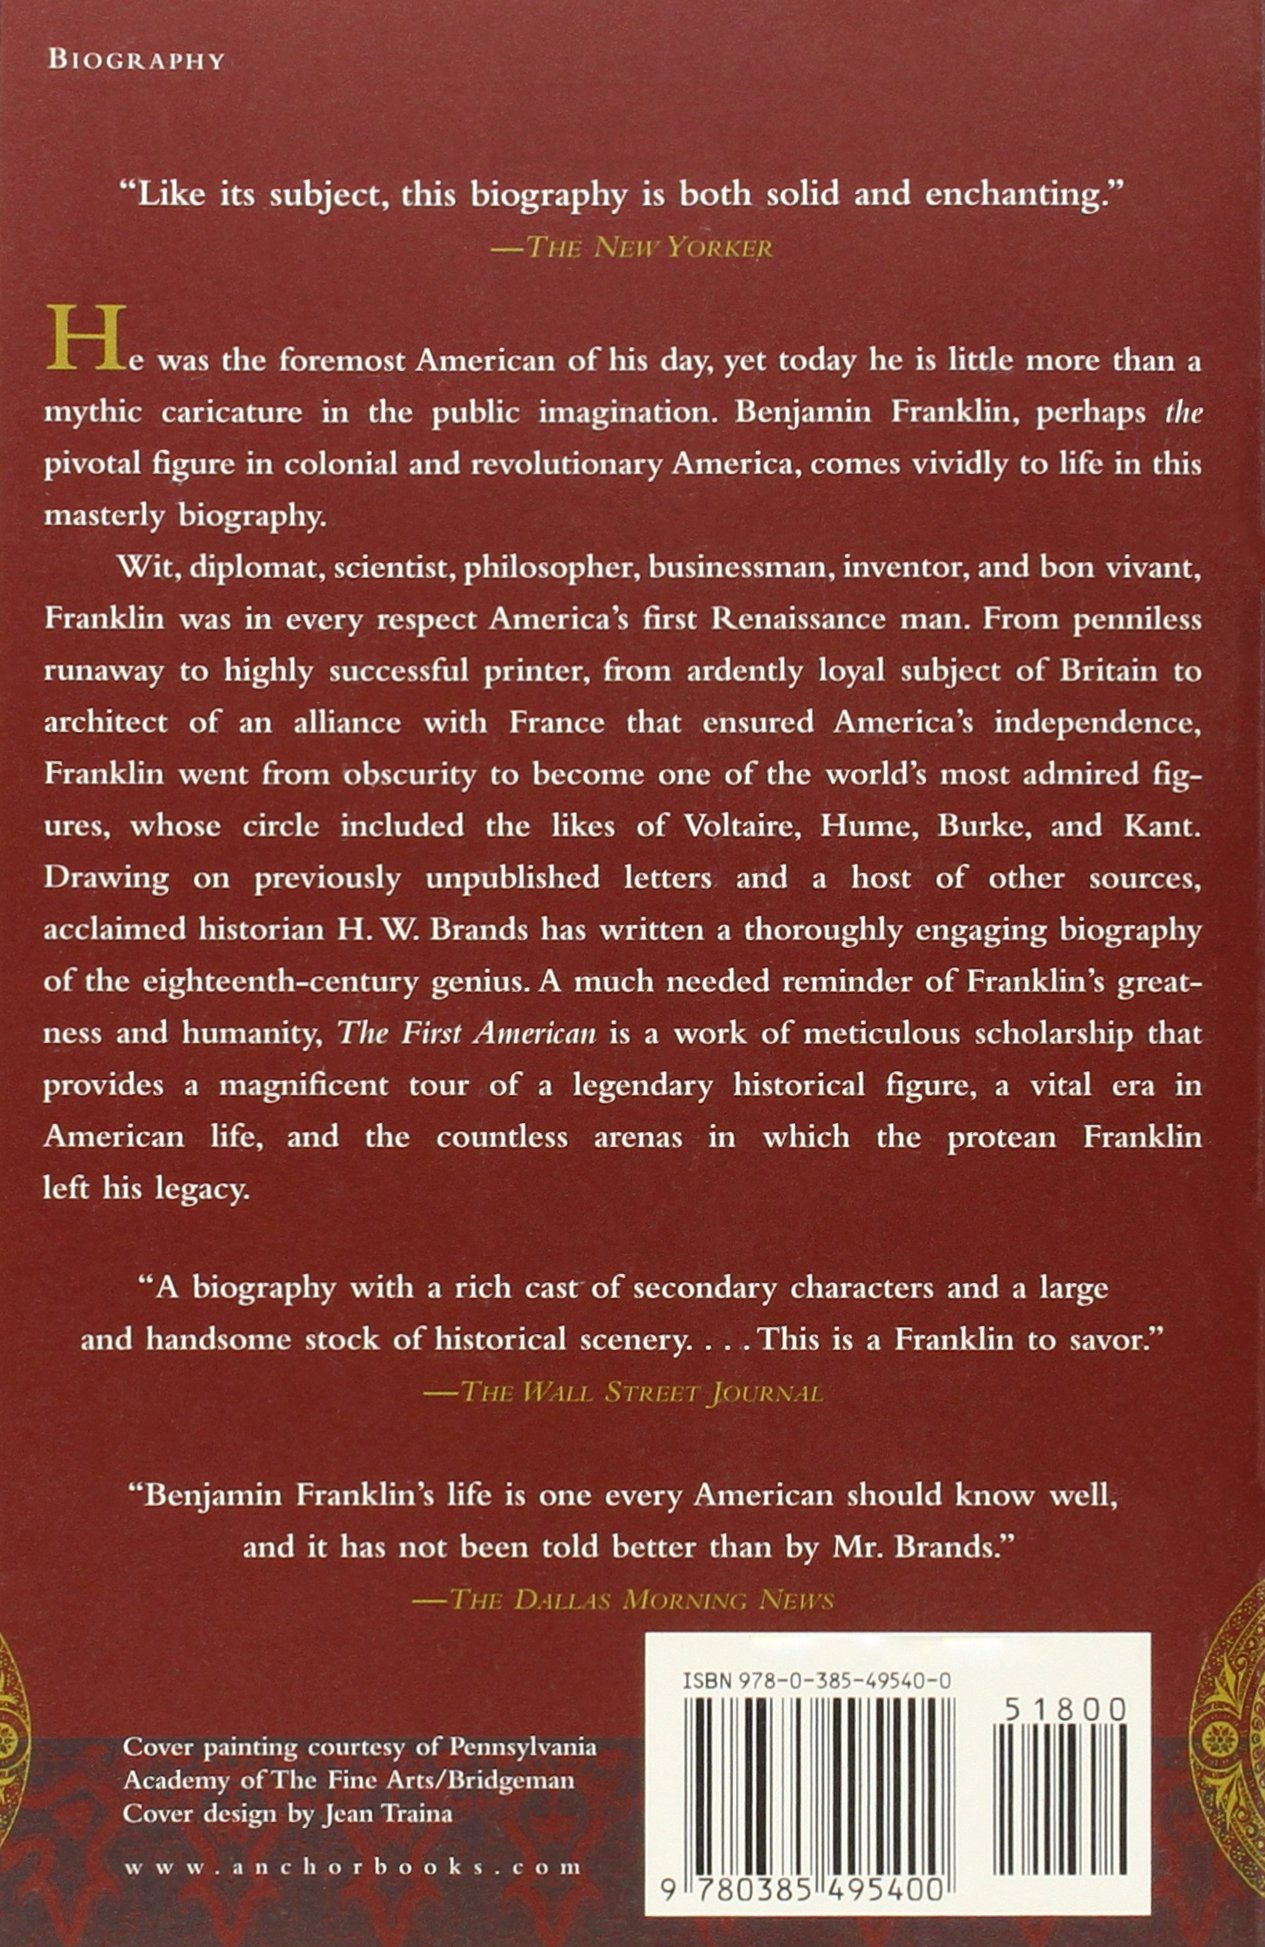 a biography of the life and times of benjamin franklin In the first comprehensive biography of benjamin franklin in over sixty years, acclaimed historian h w brands brings vividly to life one of the most delightful, bawdy, brilliant, original, and important figures in american history a groundbreaking scientist, leading businessman, philosopher.